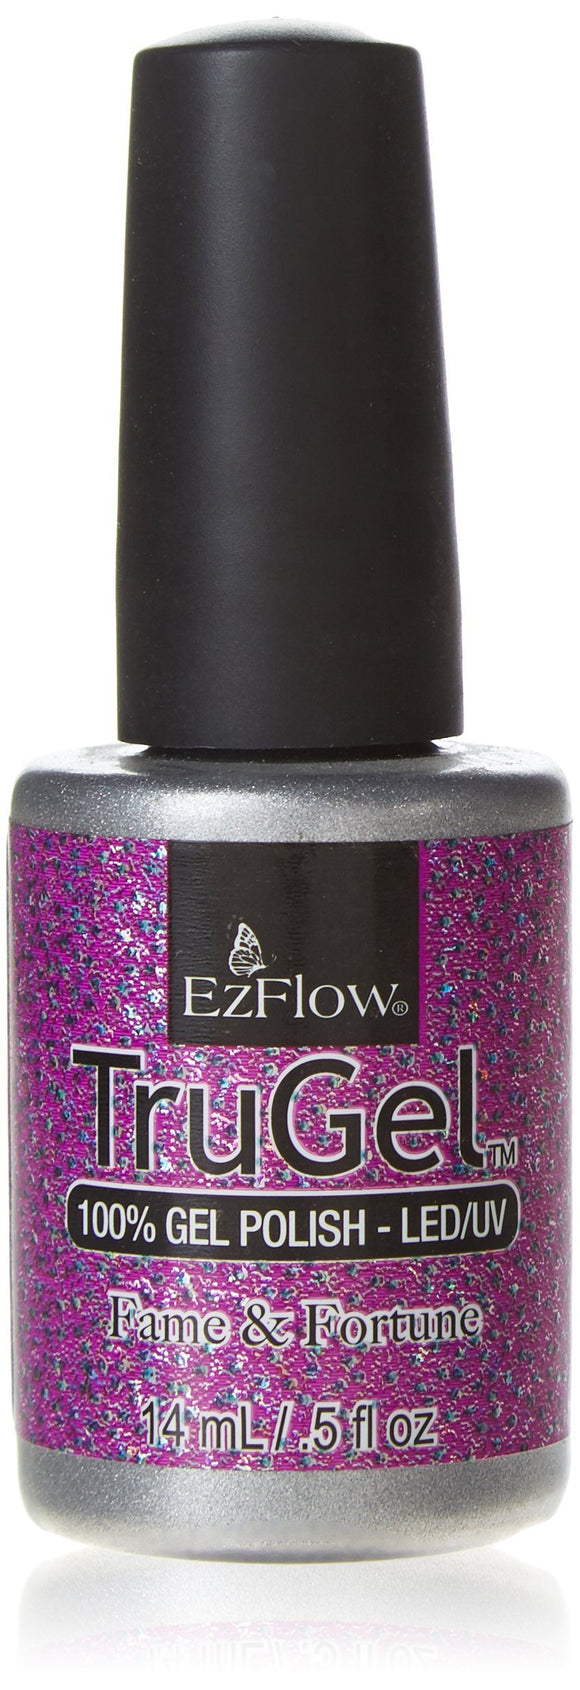 Ez Flow TruGel LED/UV Gel Polish - 14 mL (Fame & Fortune - EZTG42336)